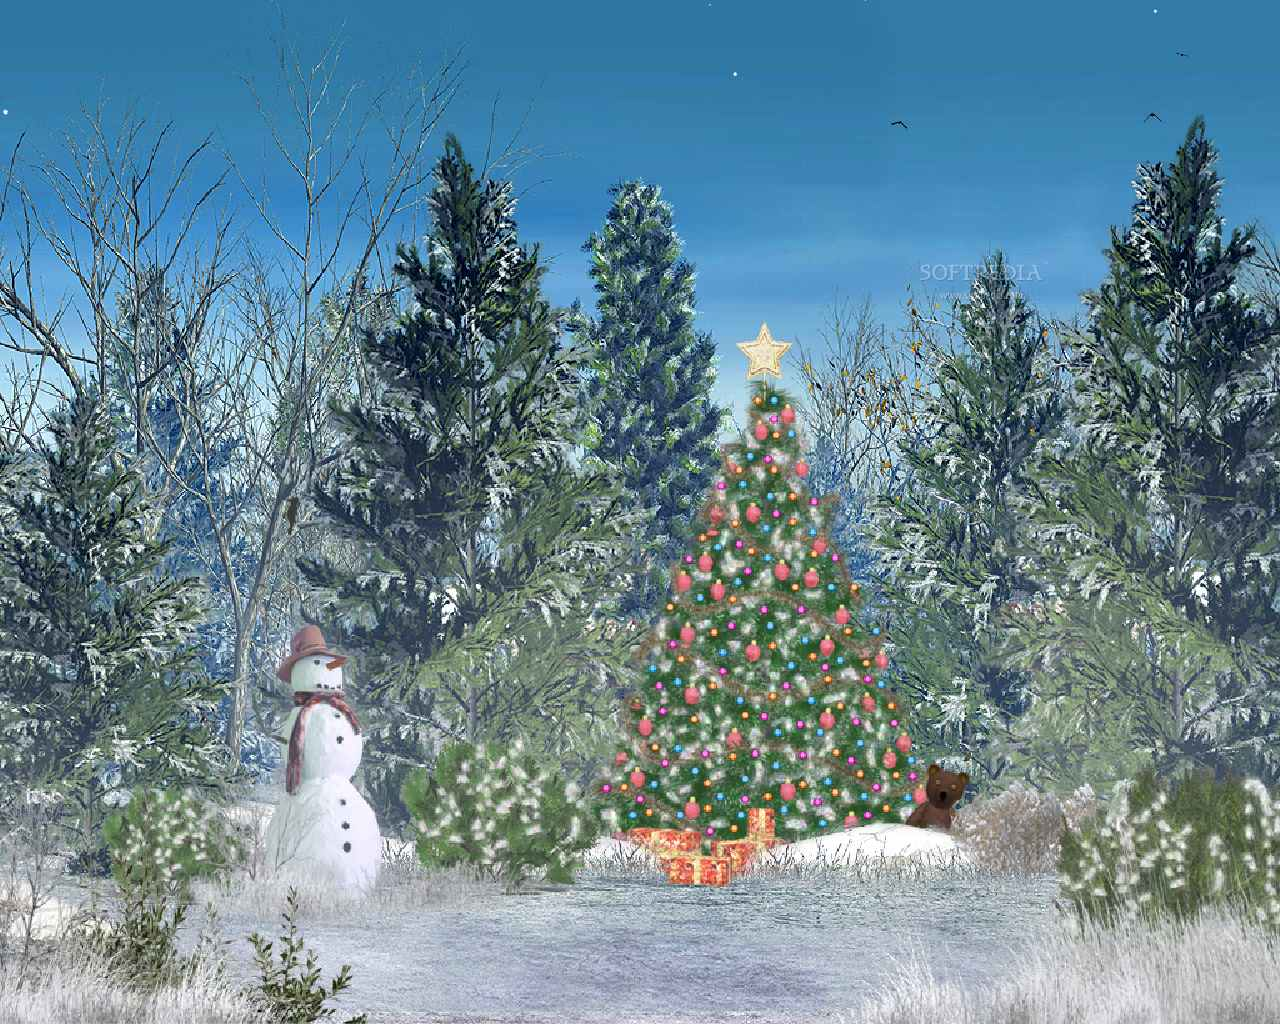 60 Beautiful Christmas Wallpapers for your Desktop